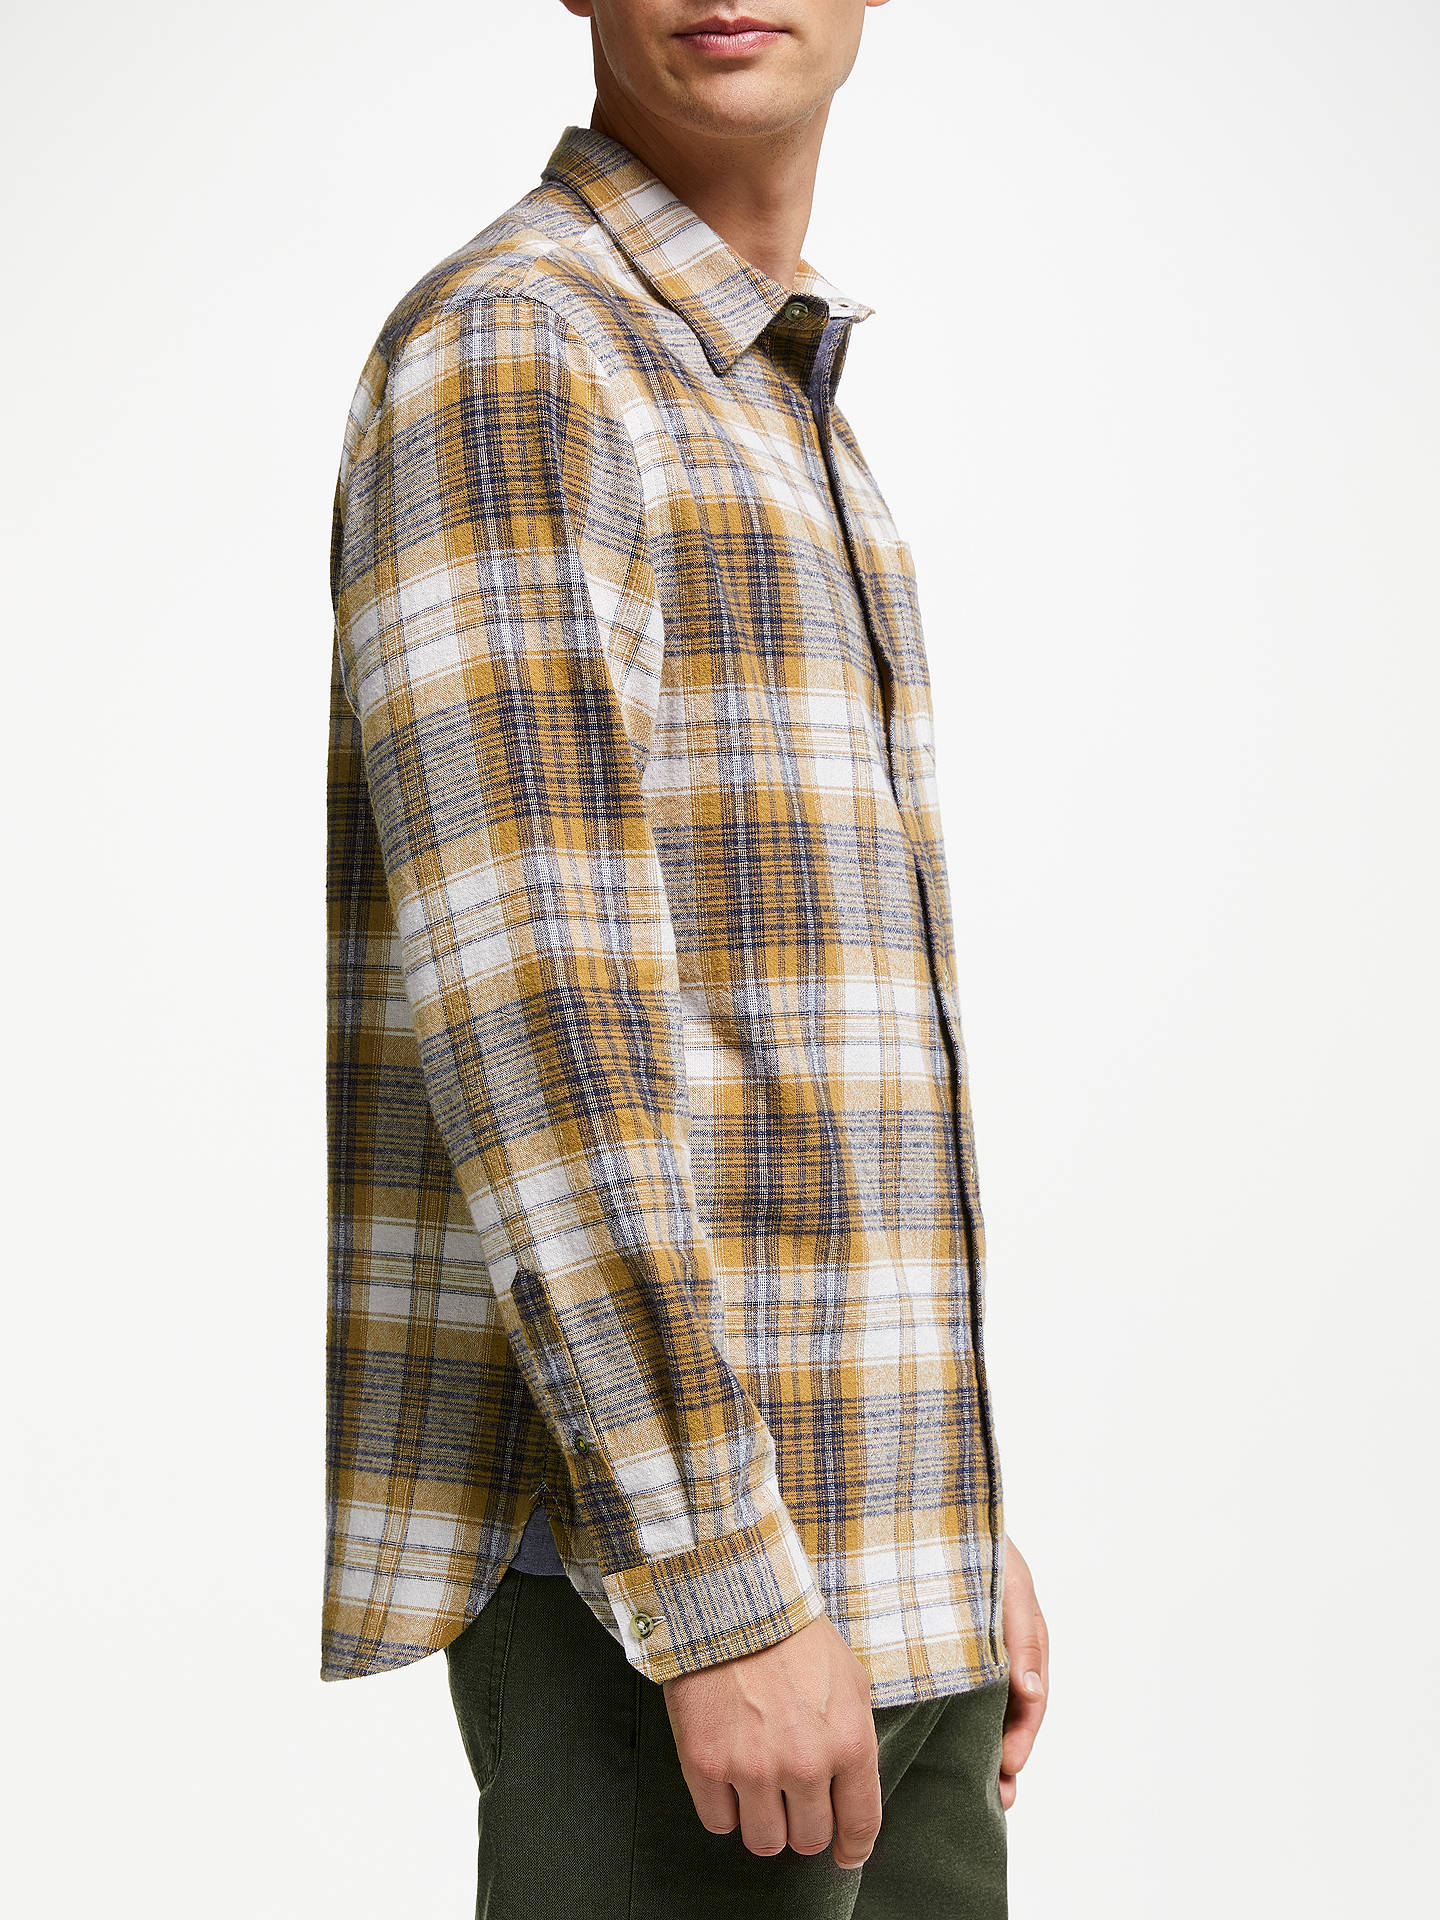 BuyJohn Lewis & Partners Eddie Brushed Check Shirt, Brown, S Online at johnlewis.com